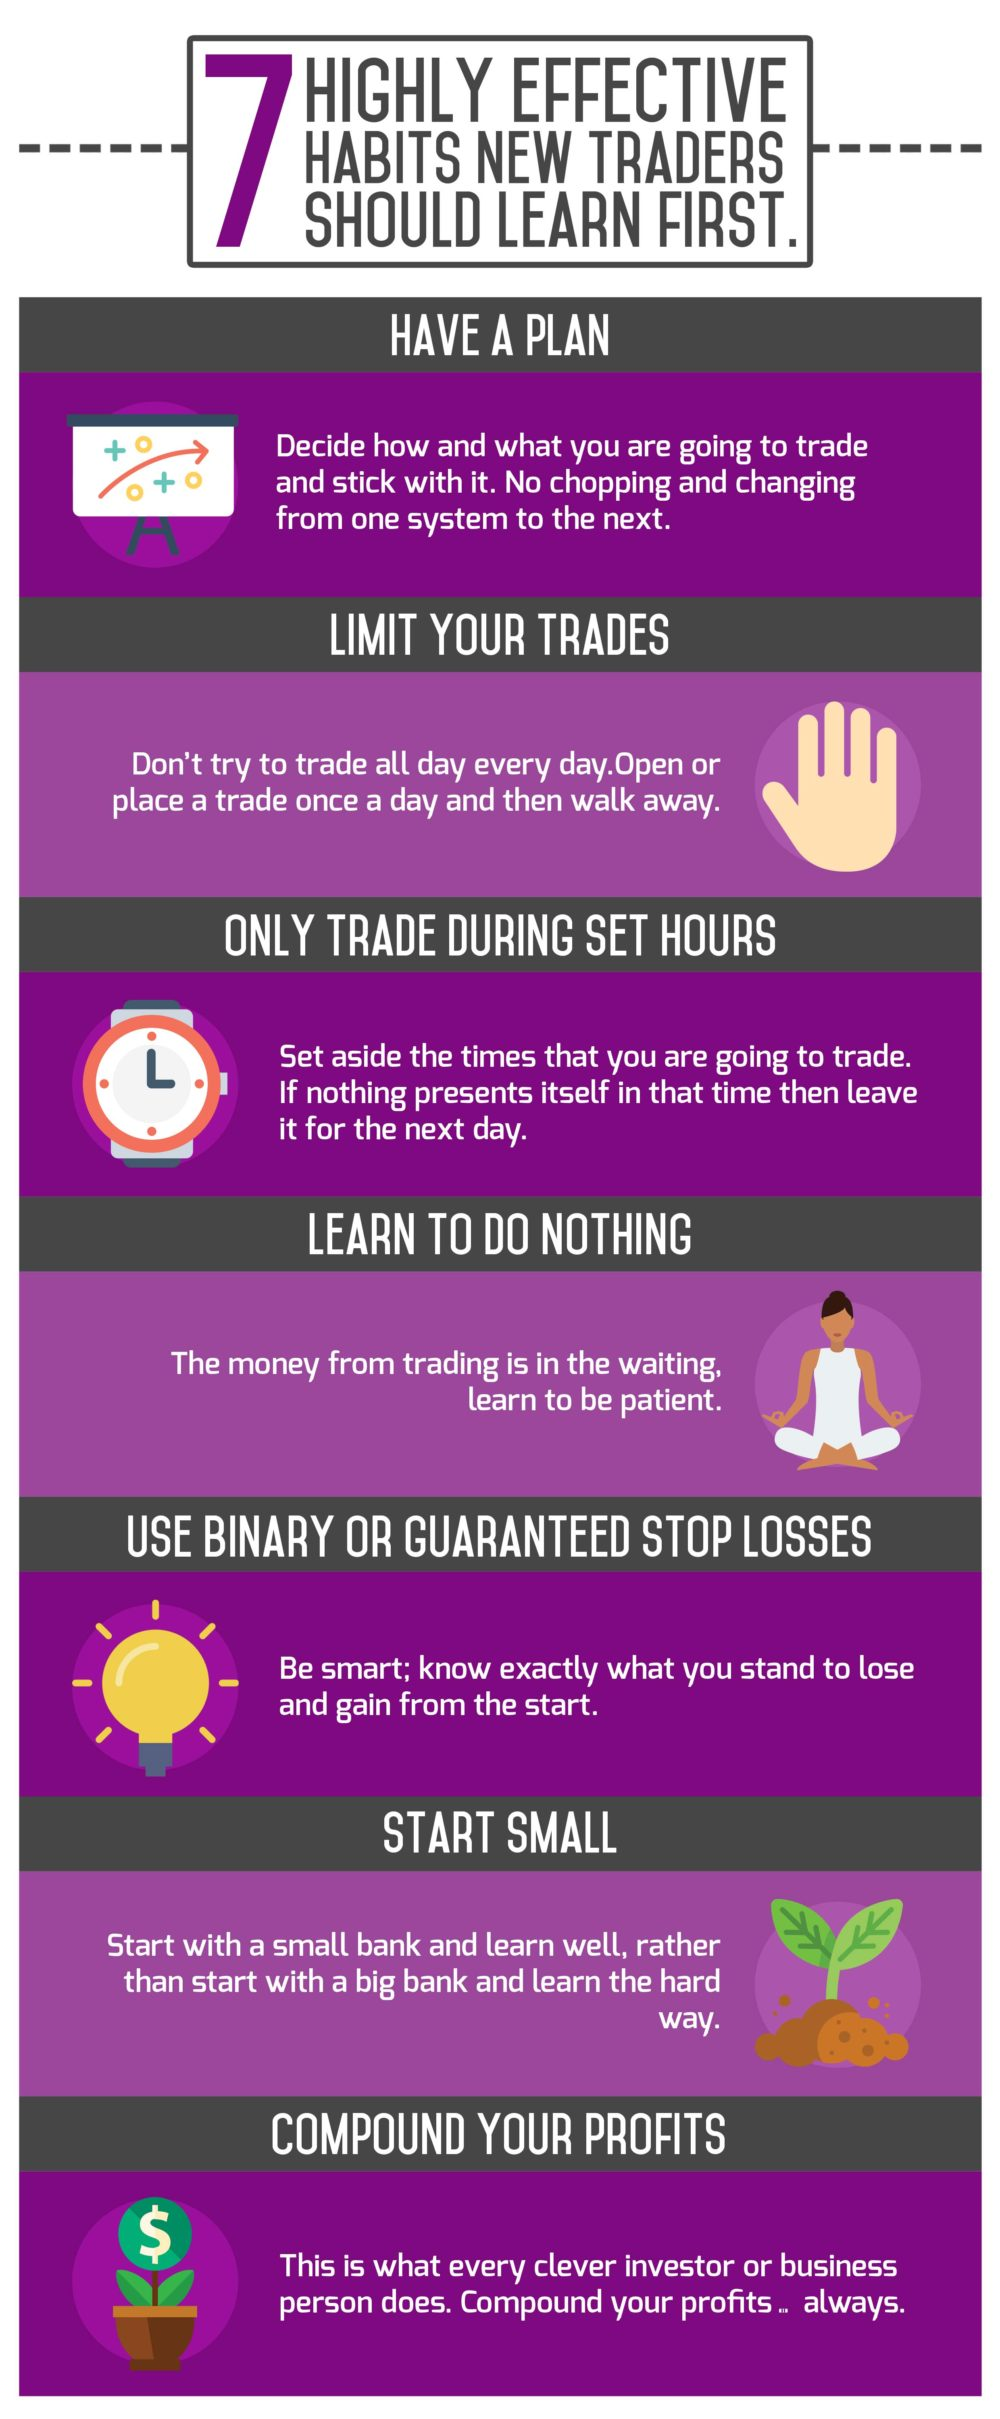 7 Highly Effective Trading Habits You Should Learn First.